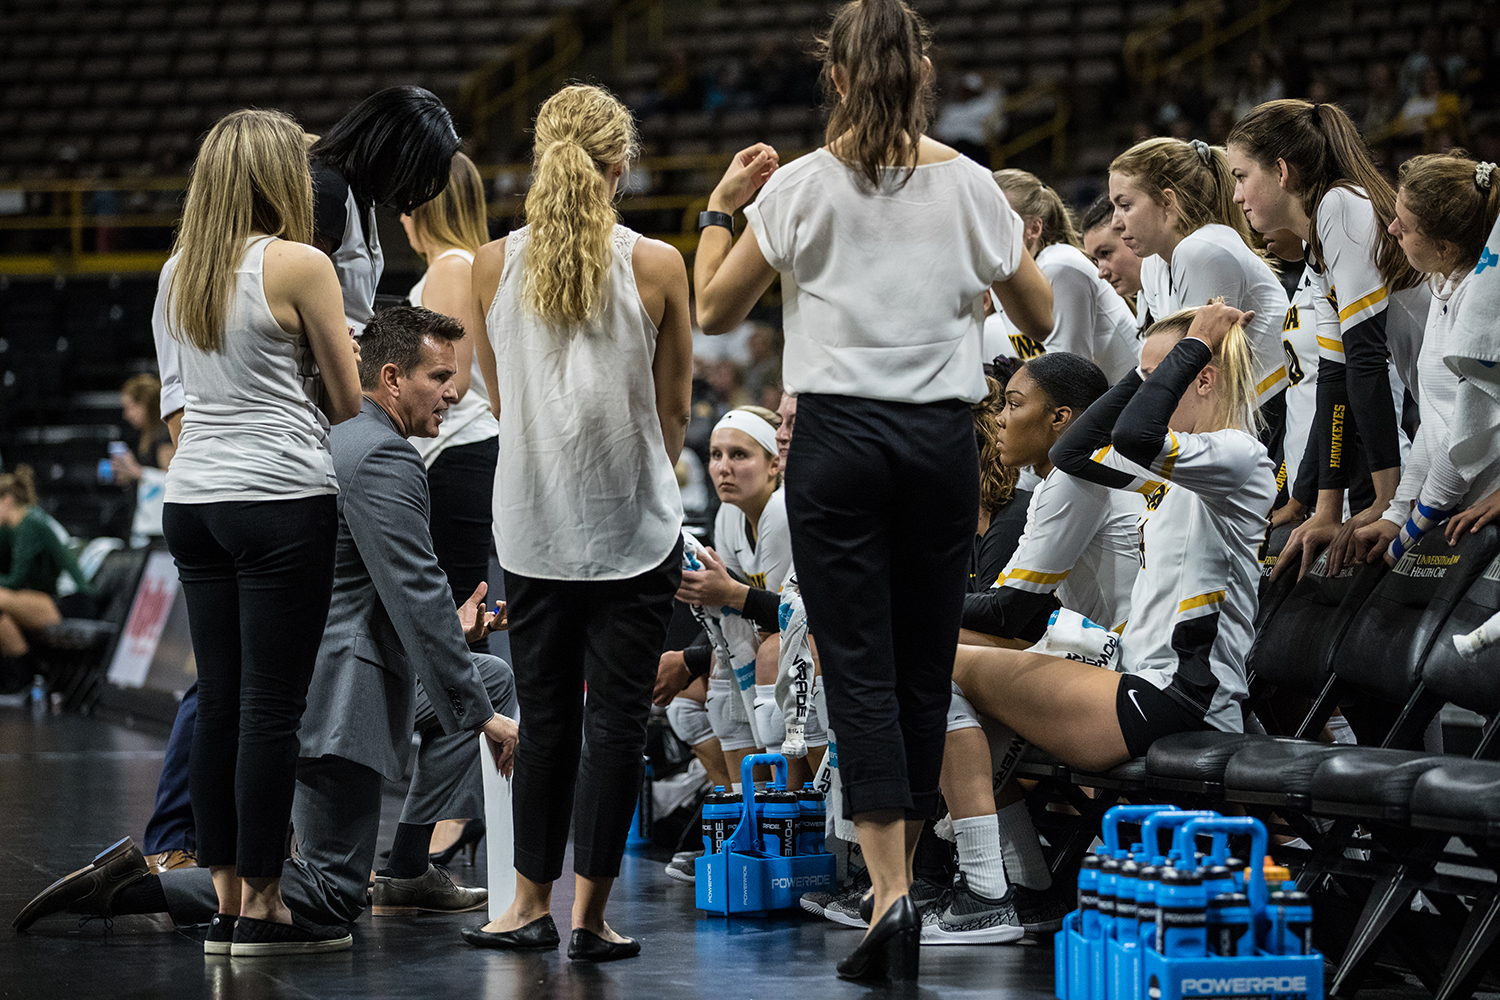 Iowa coach Bond Shymansky coaches the team on a timeout during a volleyball match between Iowa and Michigan State on Friday, Sept. 21, 2018.